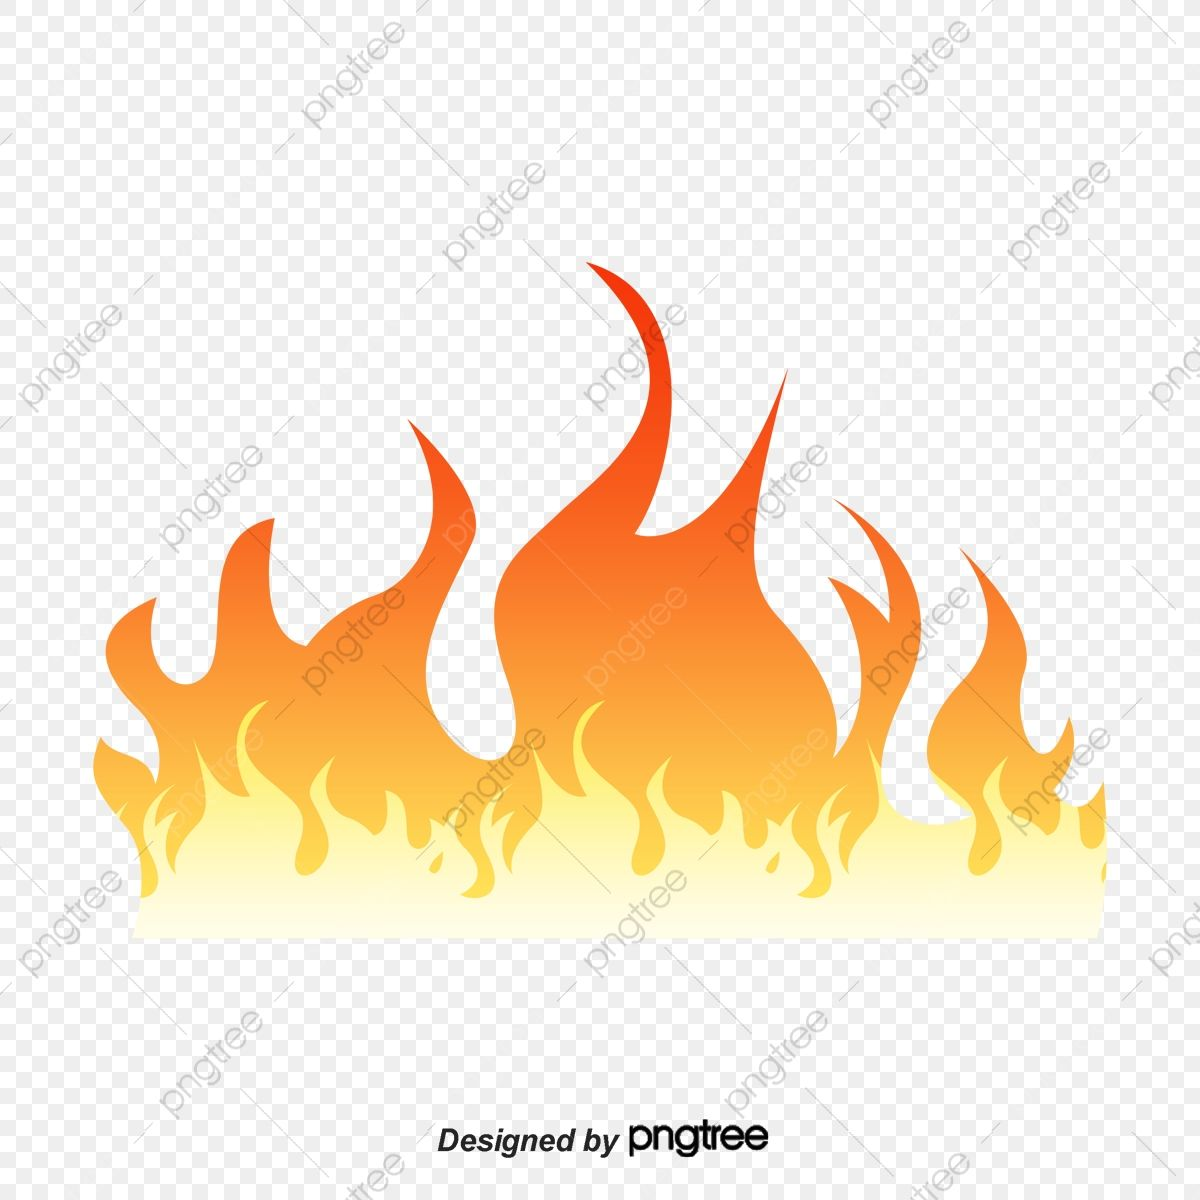 Fire Flames Fire Clipart Flame Flames Png Transparent Clipart Image And Psd File For Free Download Fire Vector Fire Clipart Images